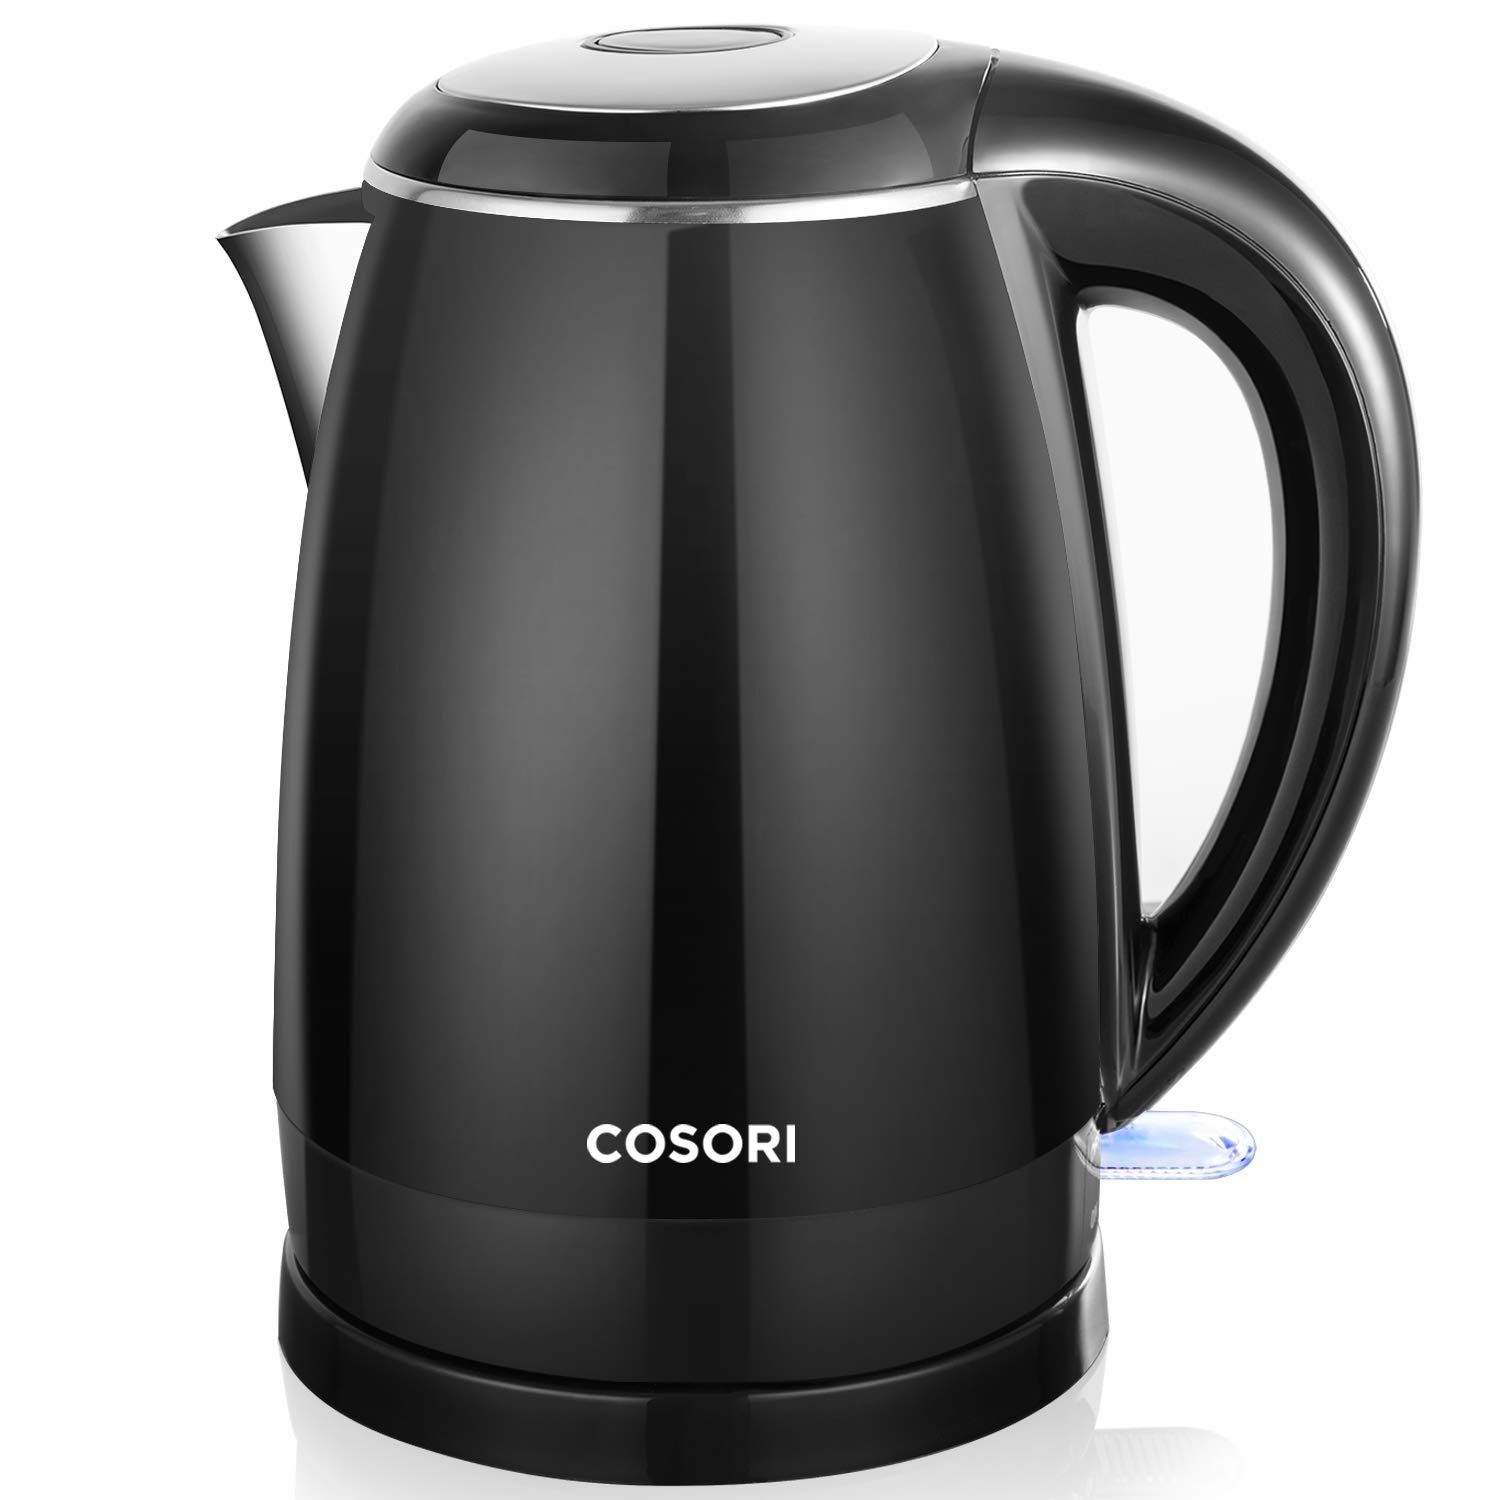 Best Electric Kettle 2020.Best Stainless Steel Electric Kettle 2020